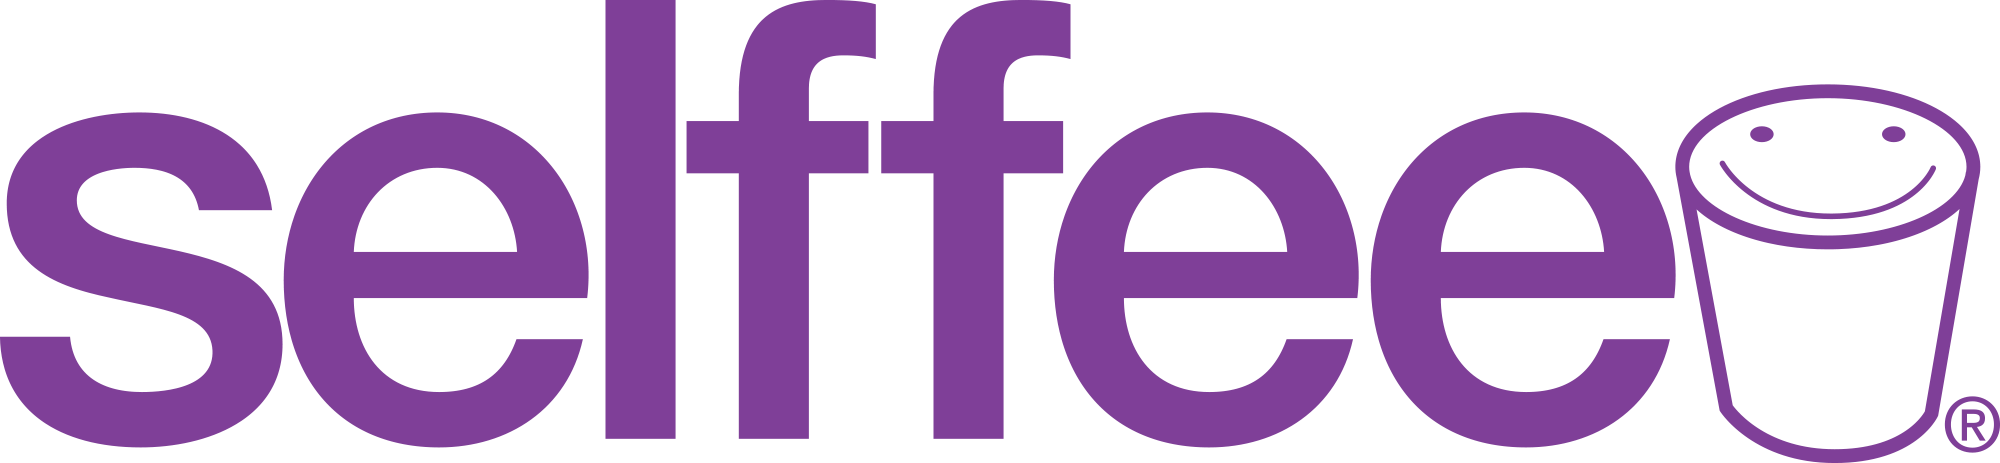 Selffee Logo_with cup_purple - Farsh Kanji.png